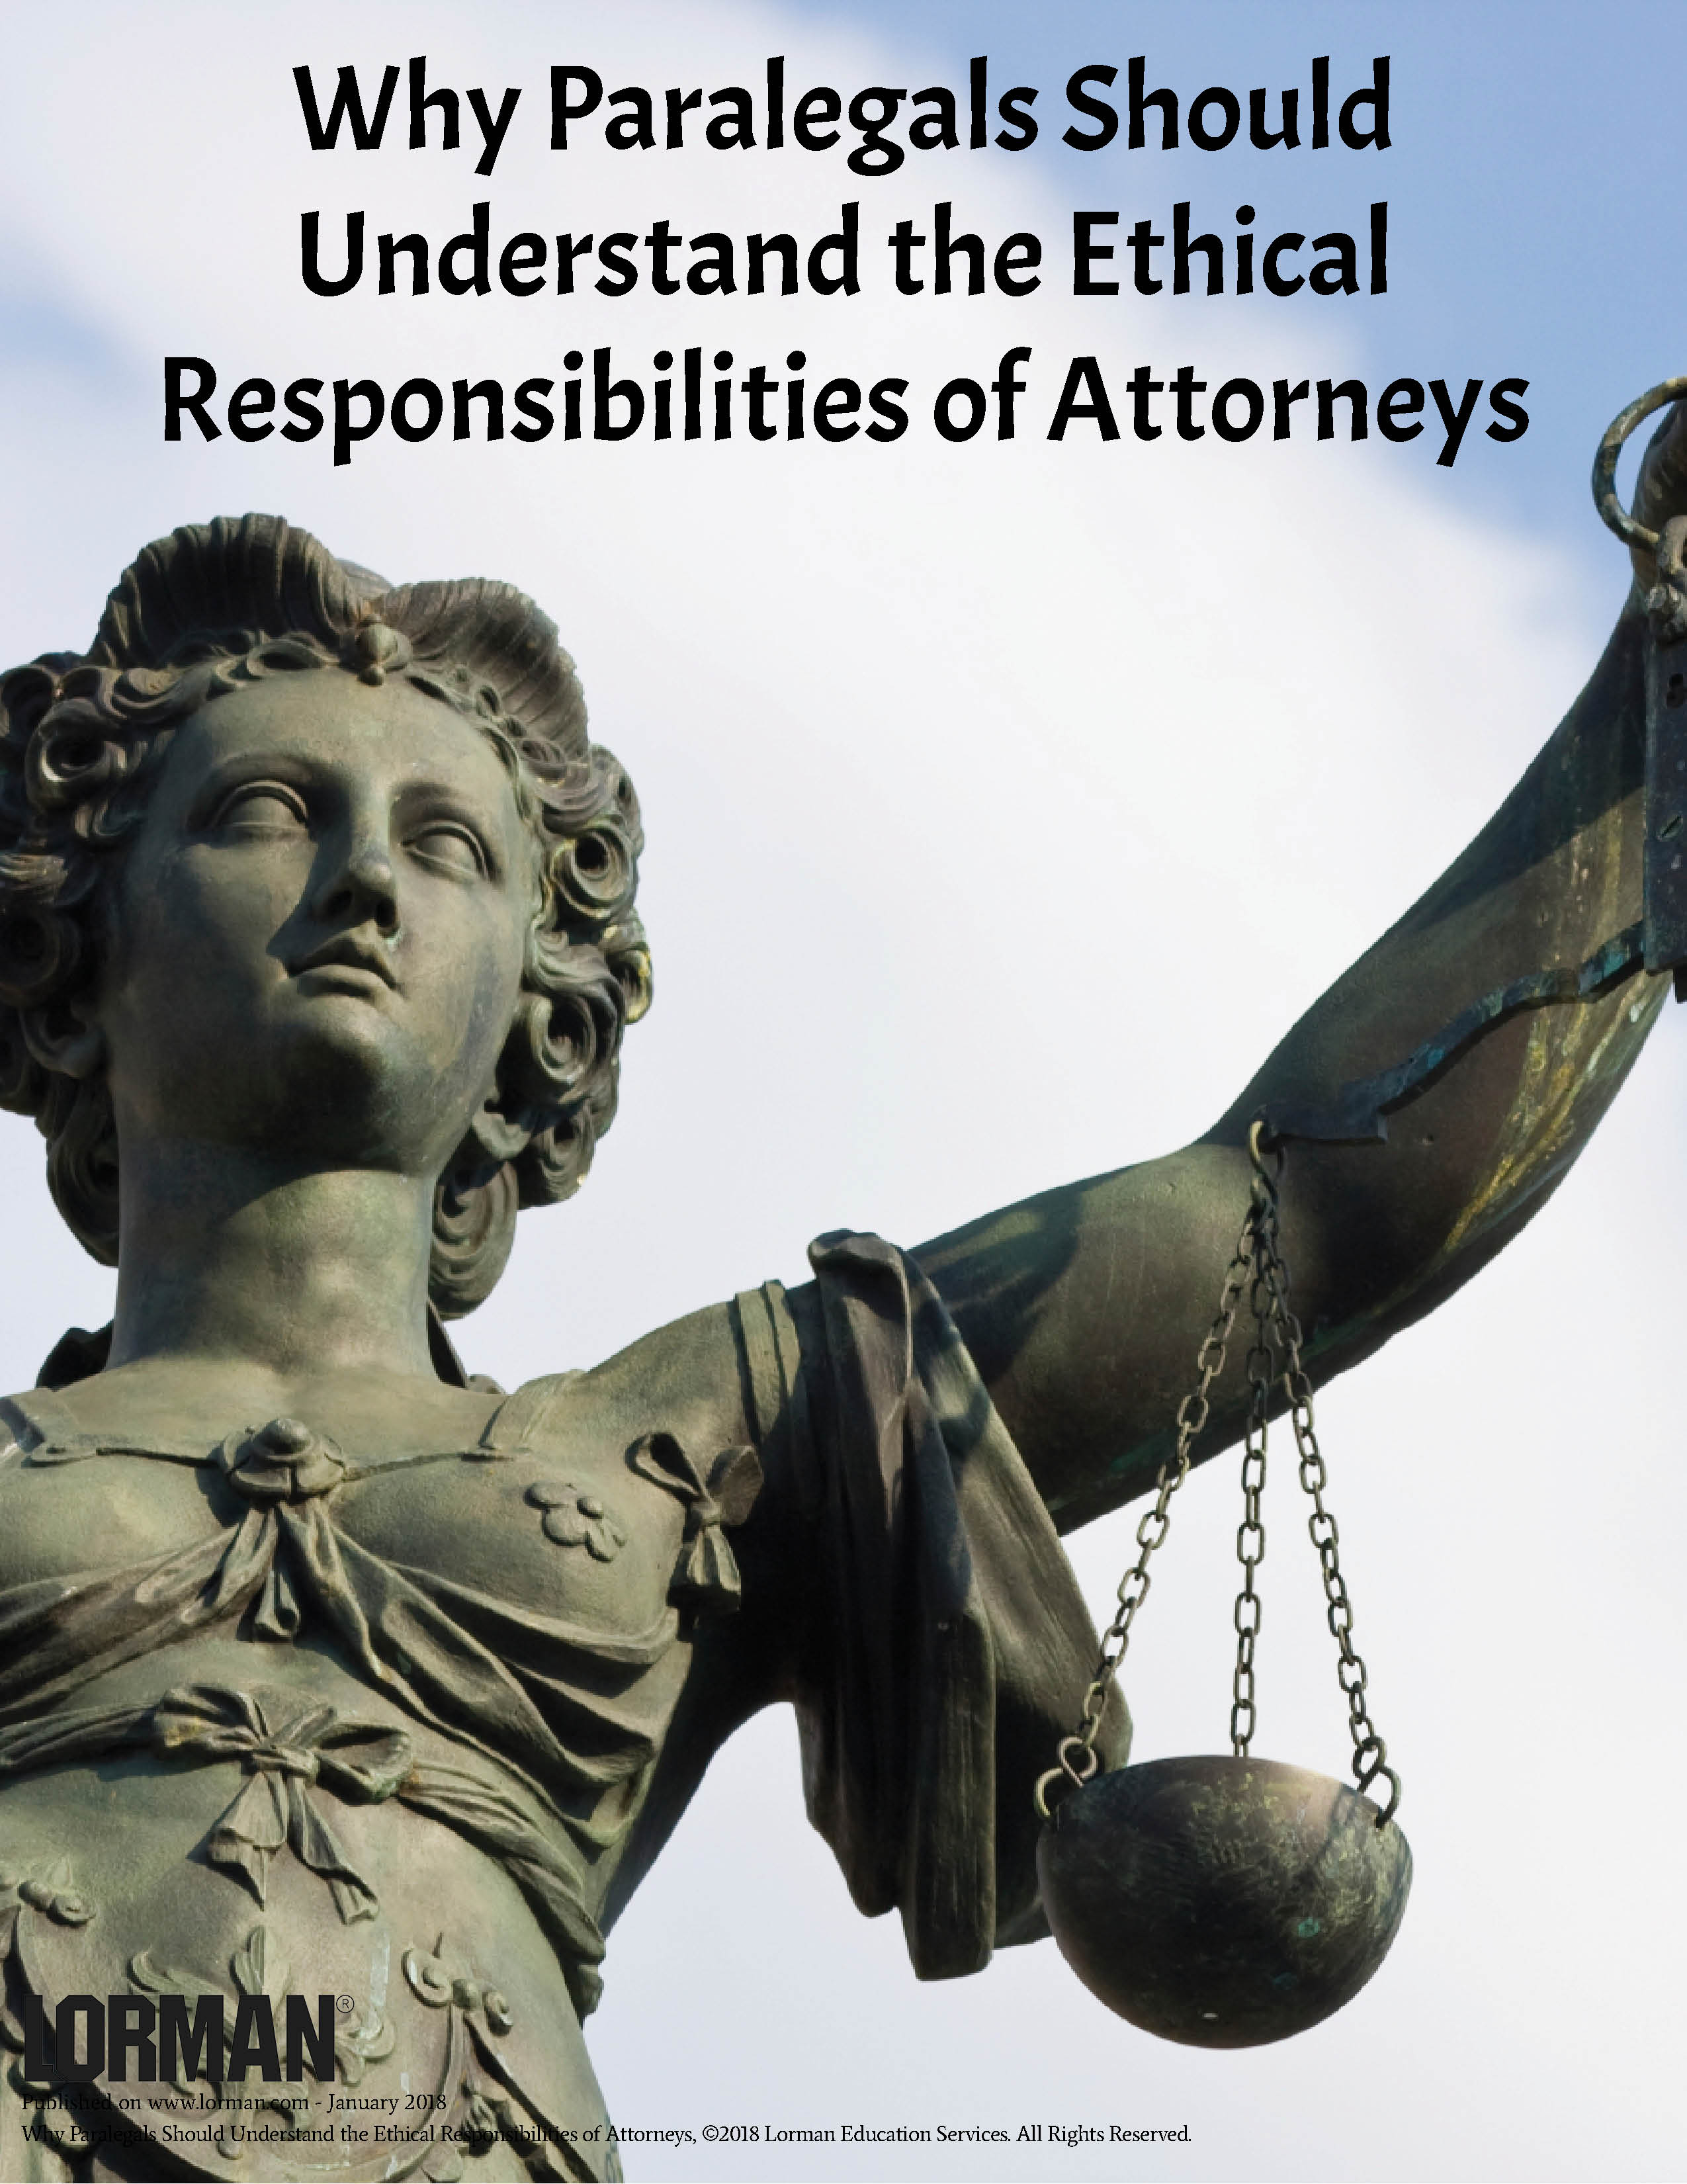 Why Paralegals Should Understand the Ethical Responsibilities of Attorneys